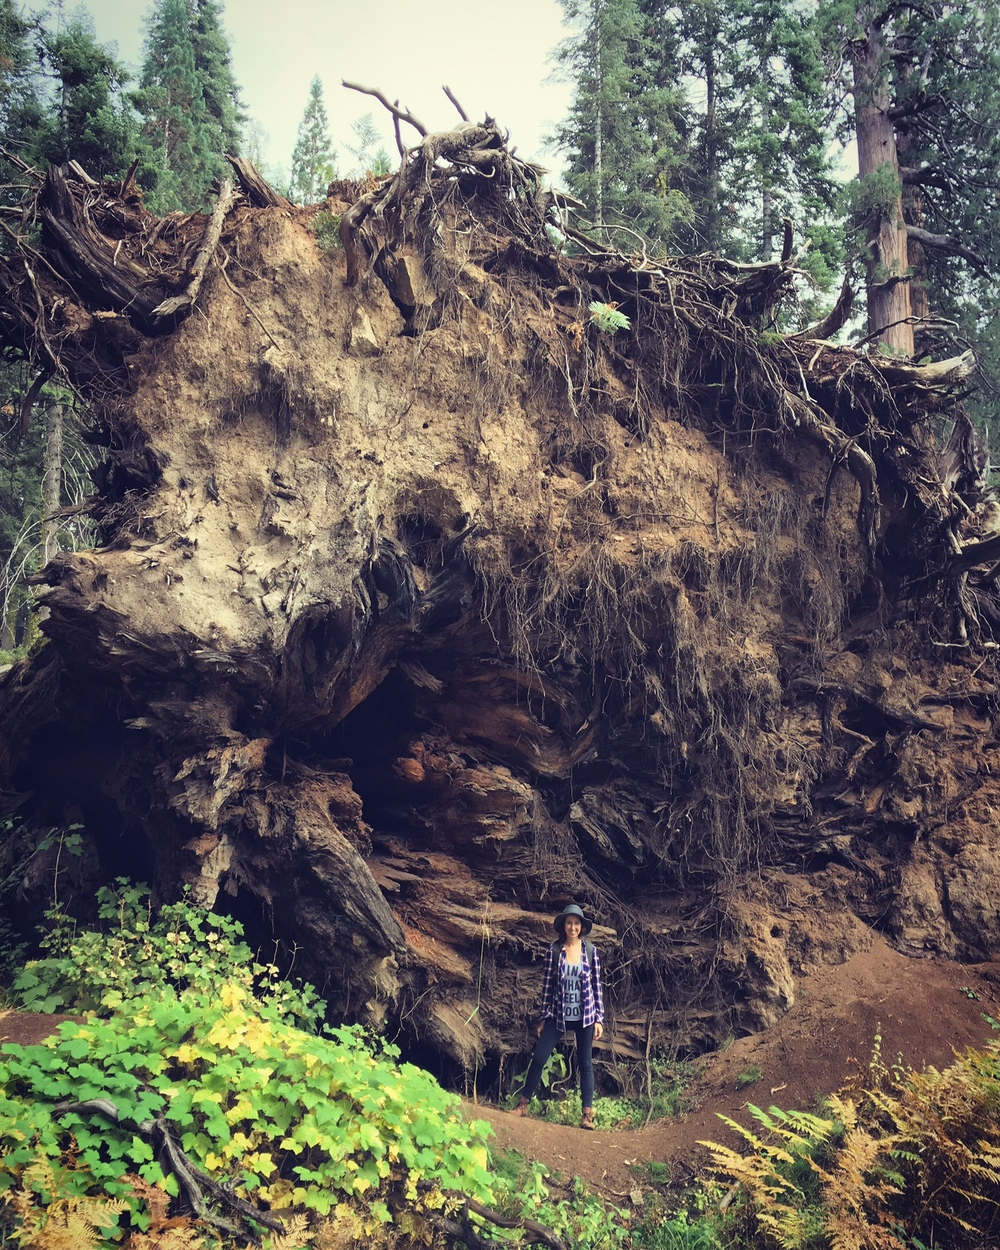 Standing at the root of a Sequoia tree